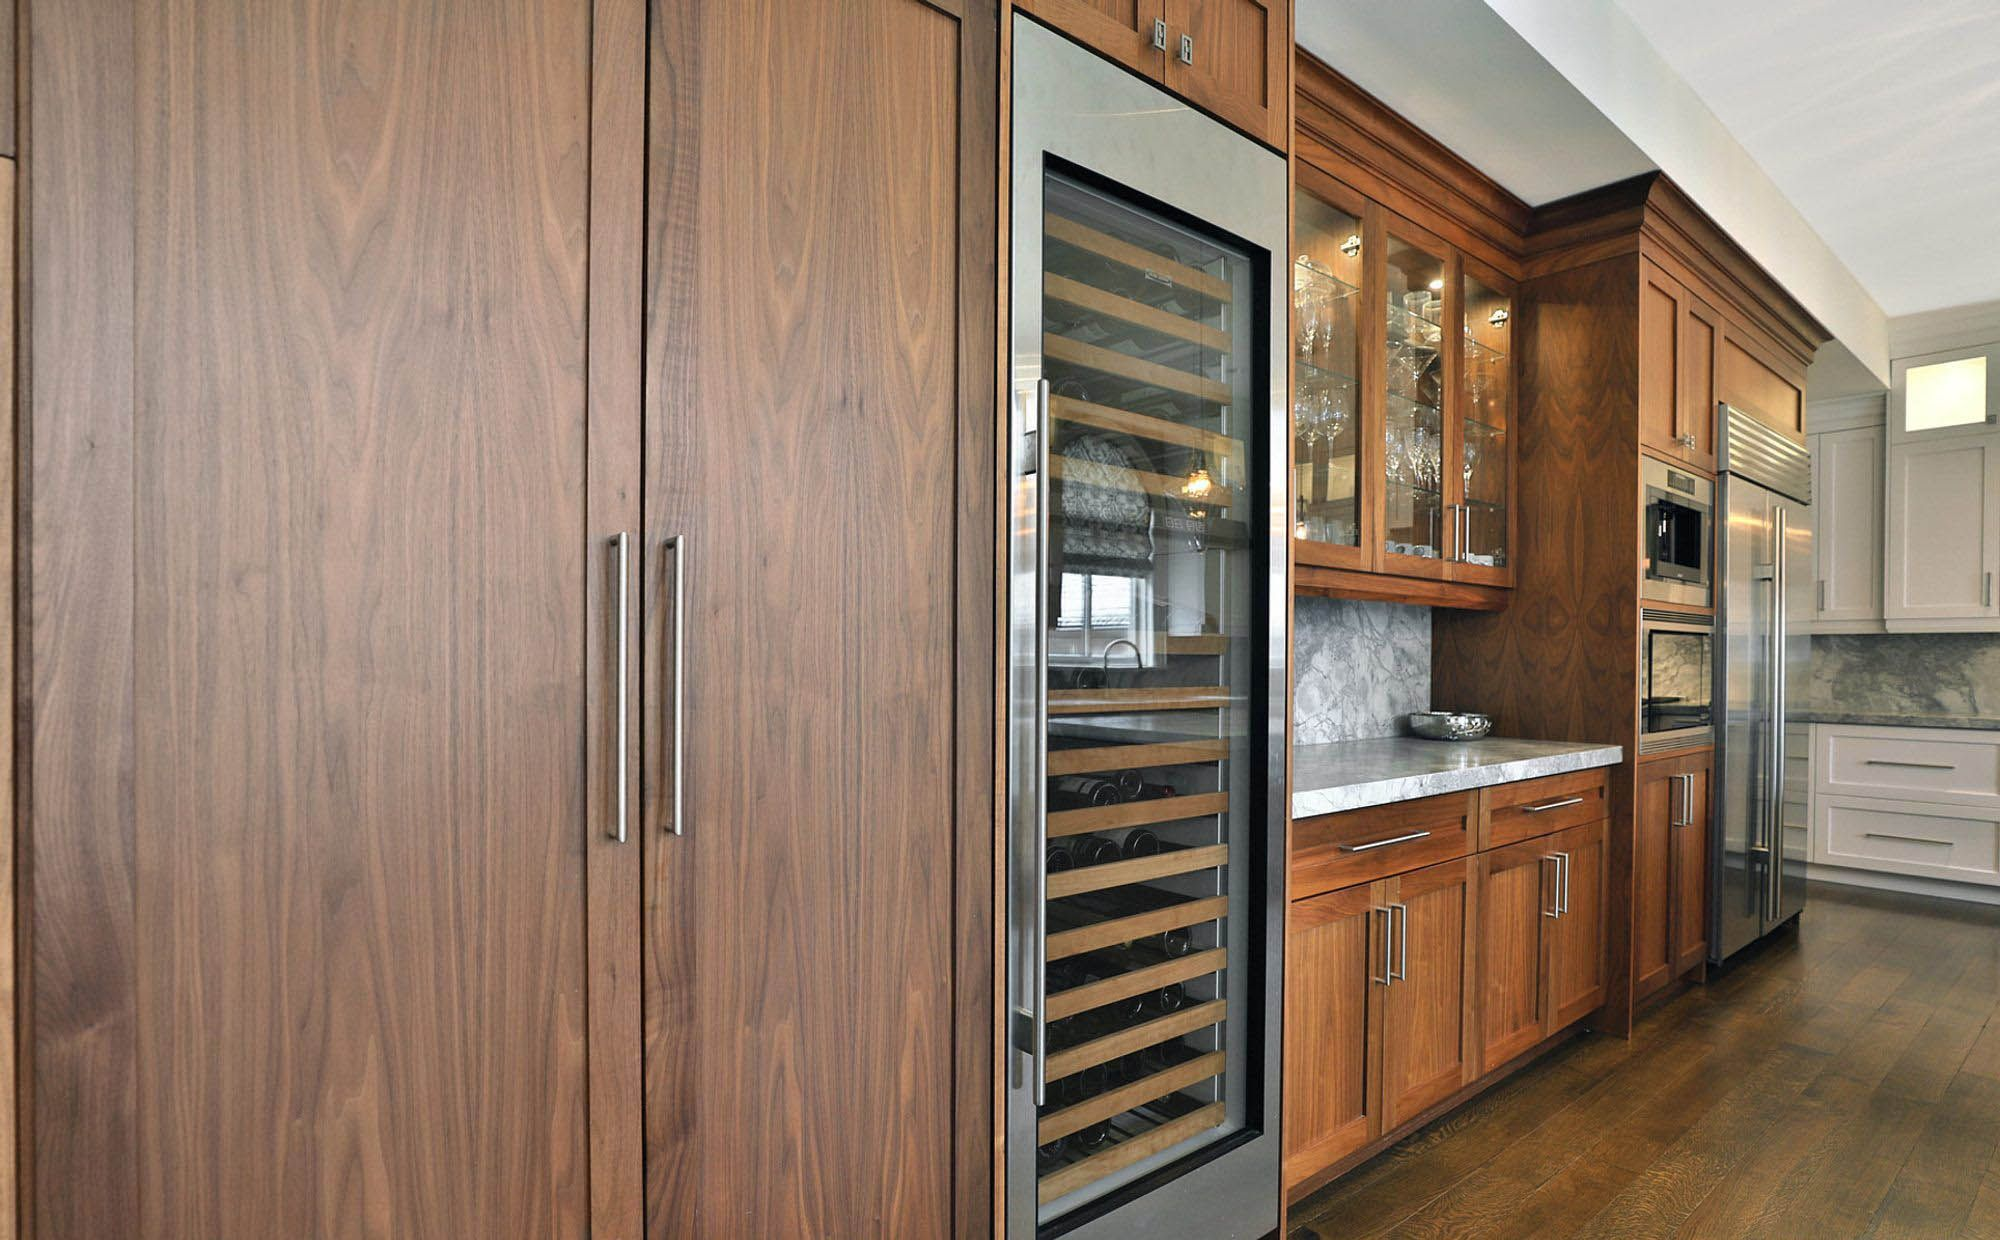 What Is Acacia Wood Everything You Need To Know Pros And Cons In 2020 Acacia Wood Acacia Hardwood Flooring Acacia Wood Flooring